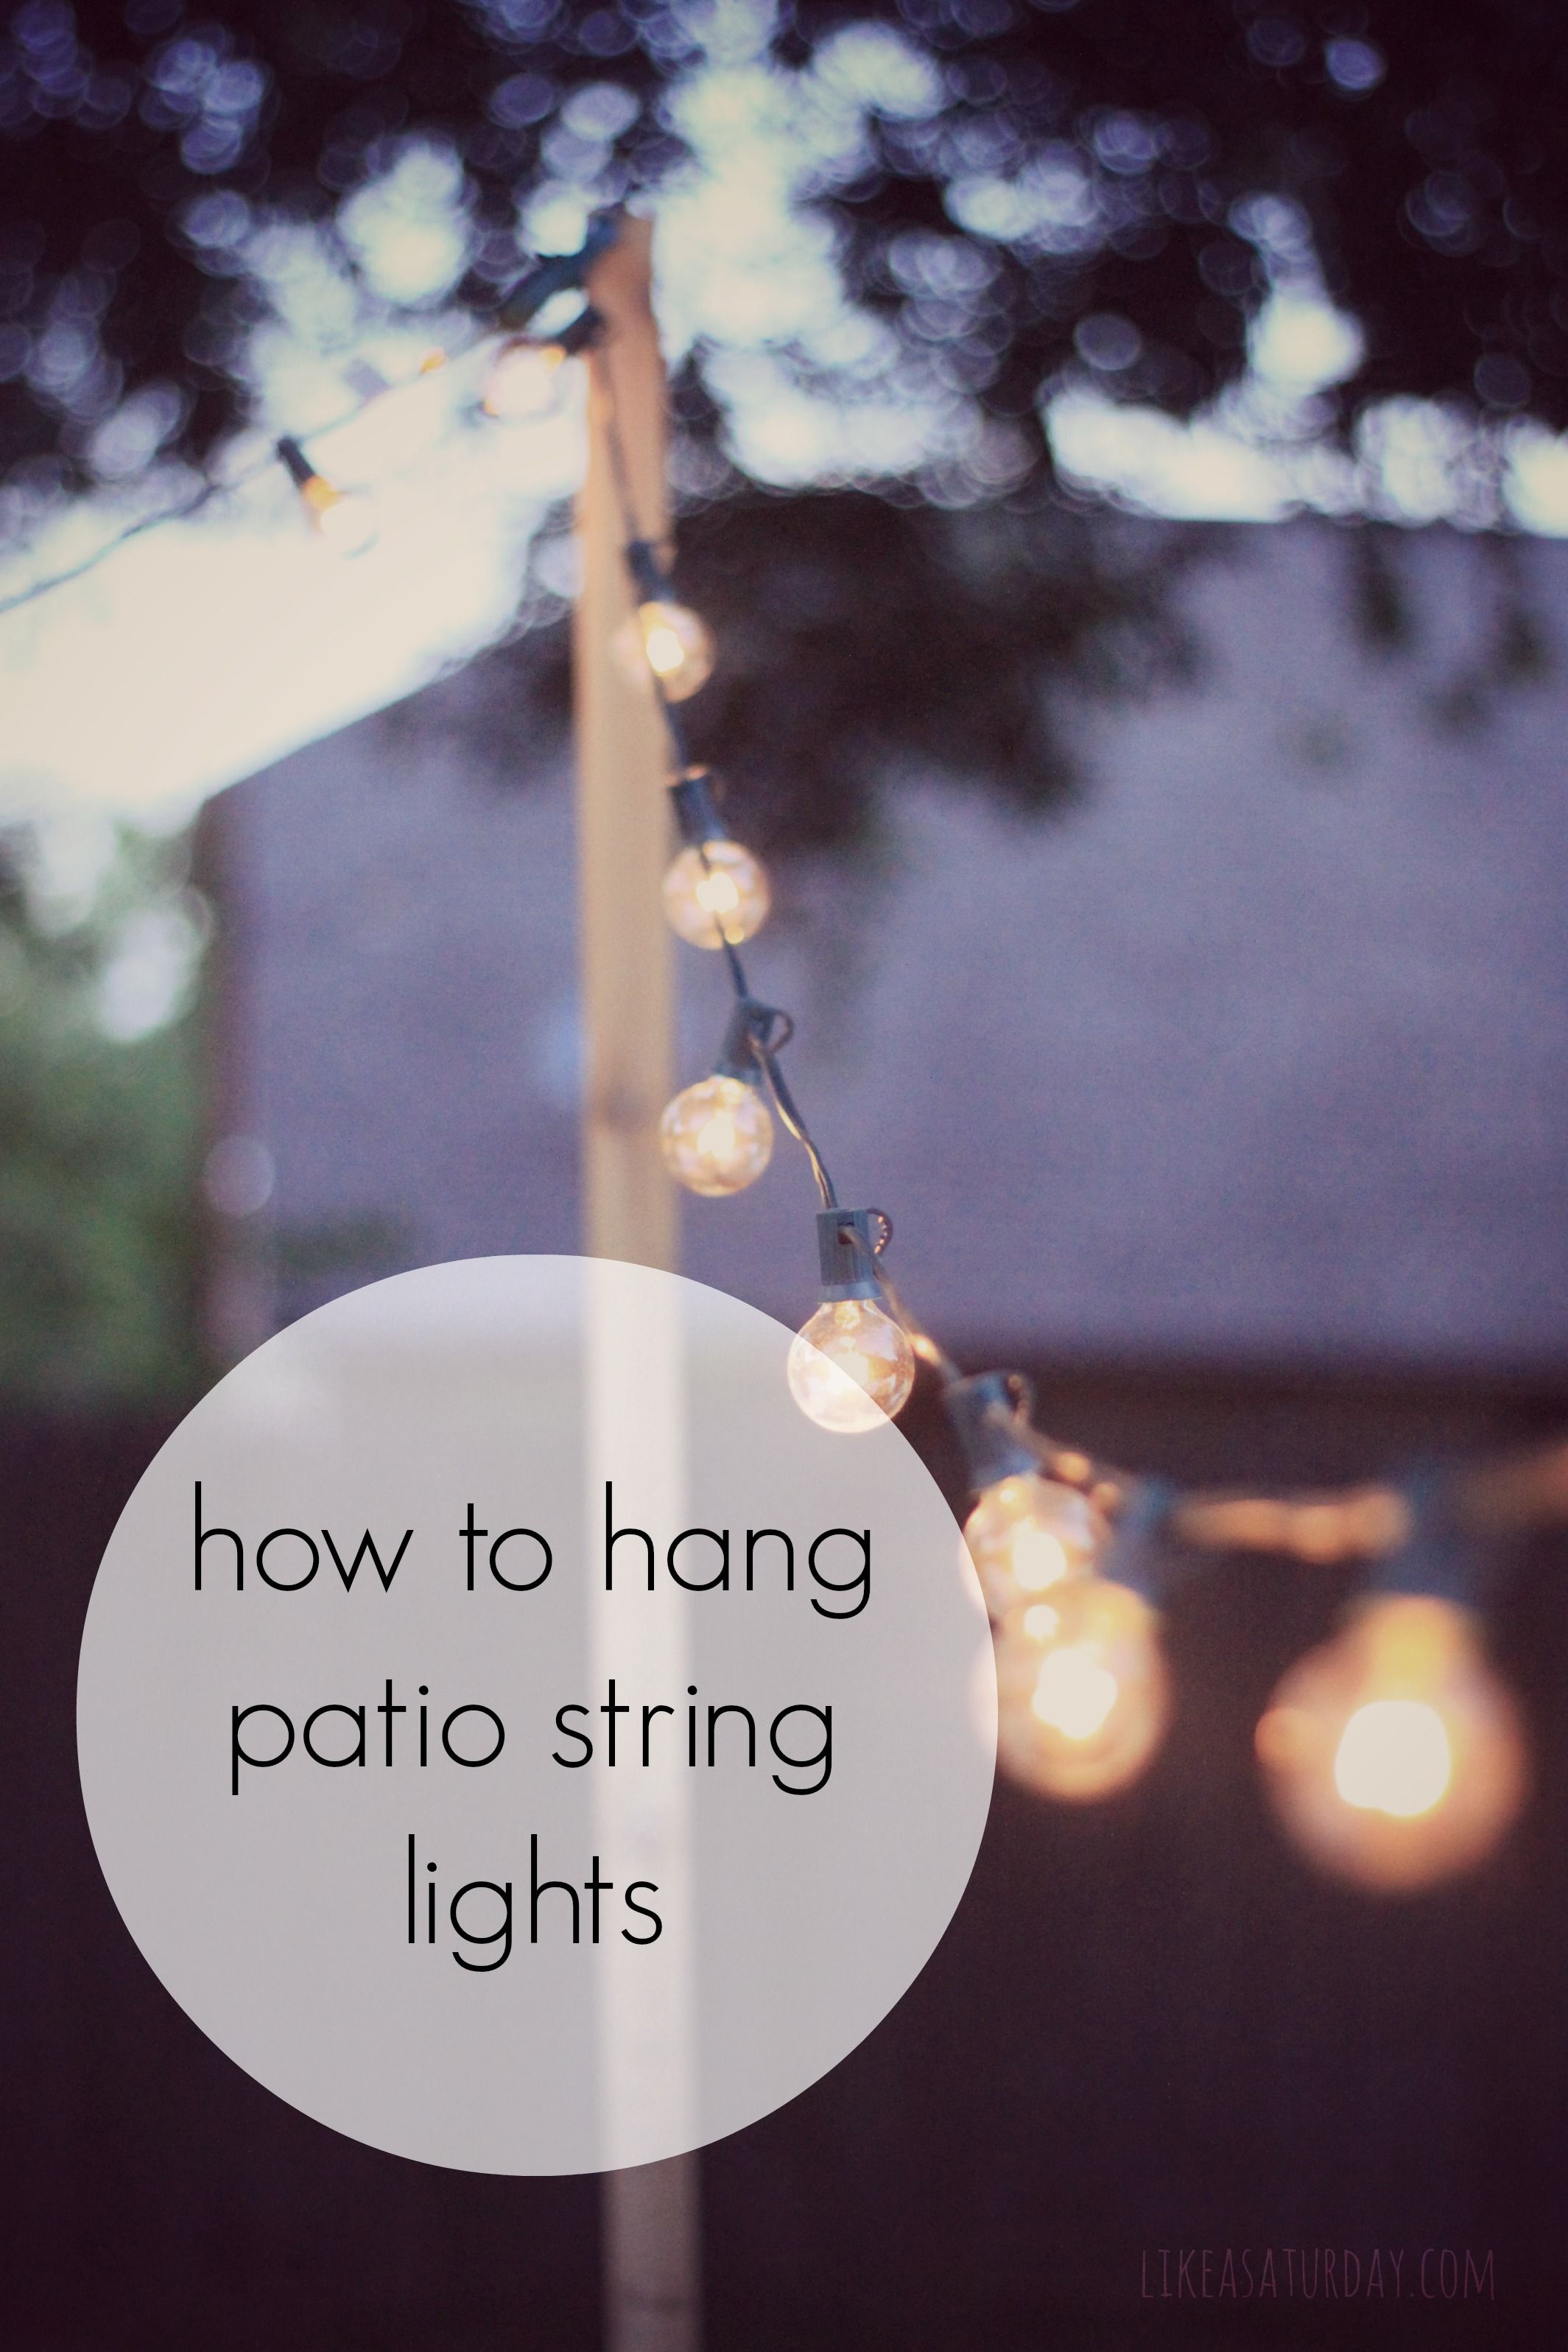 how to hang patio string lights | best of pinterest | pinterest ... - Patio String Light Ideas